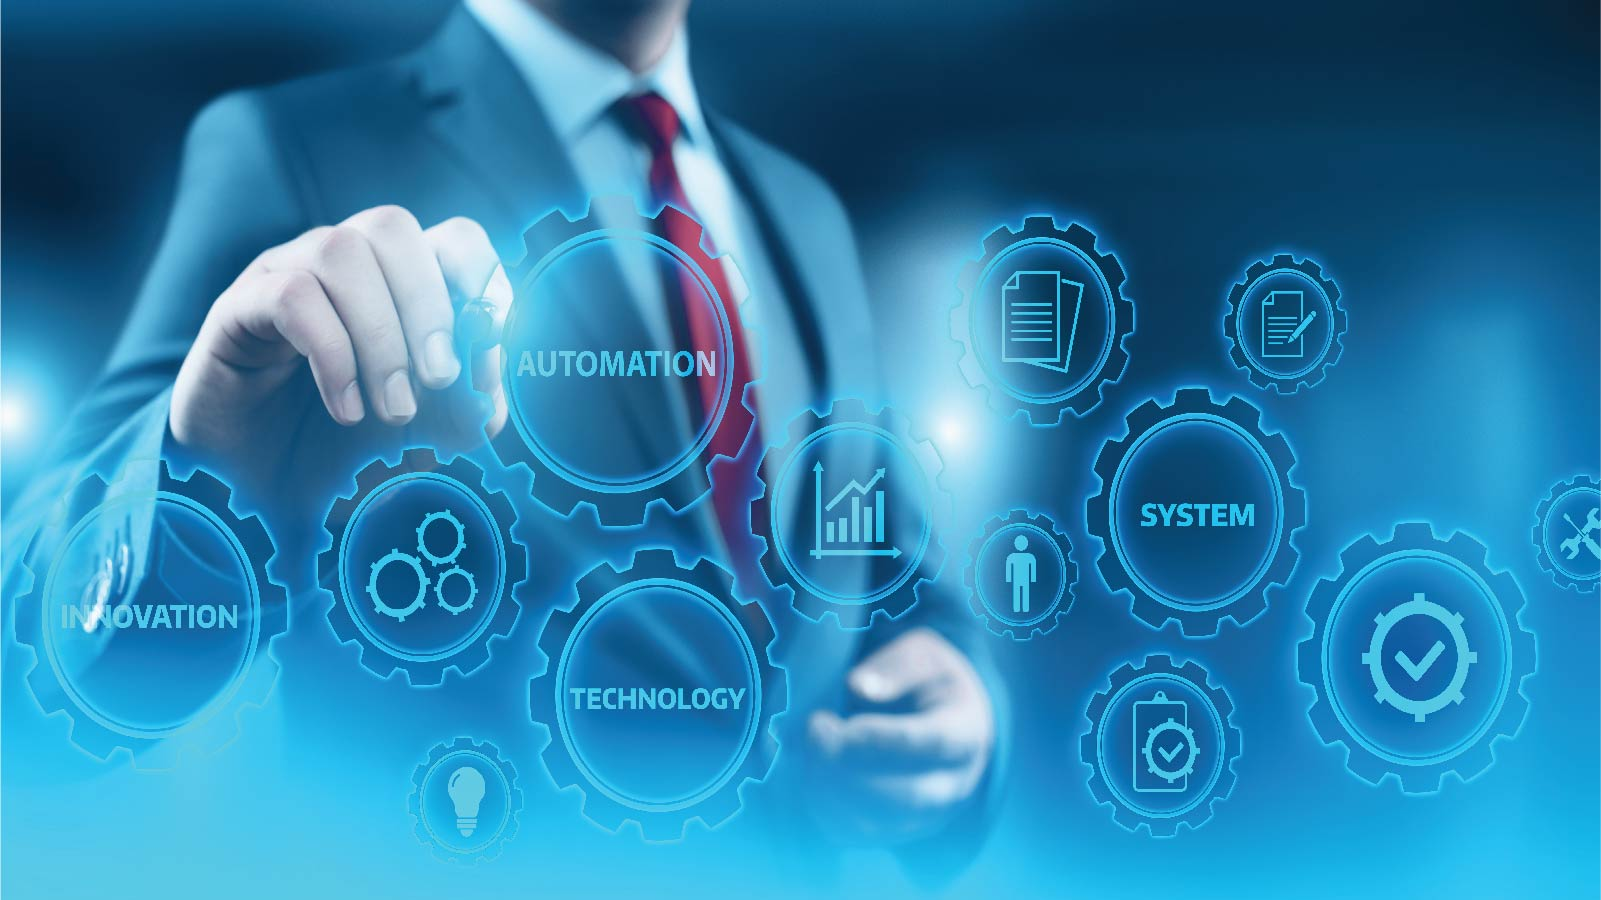 Piloting the Business Smartly to Assure Seamless Automation Transition